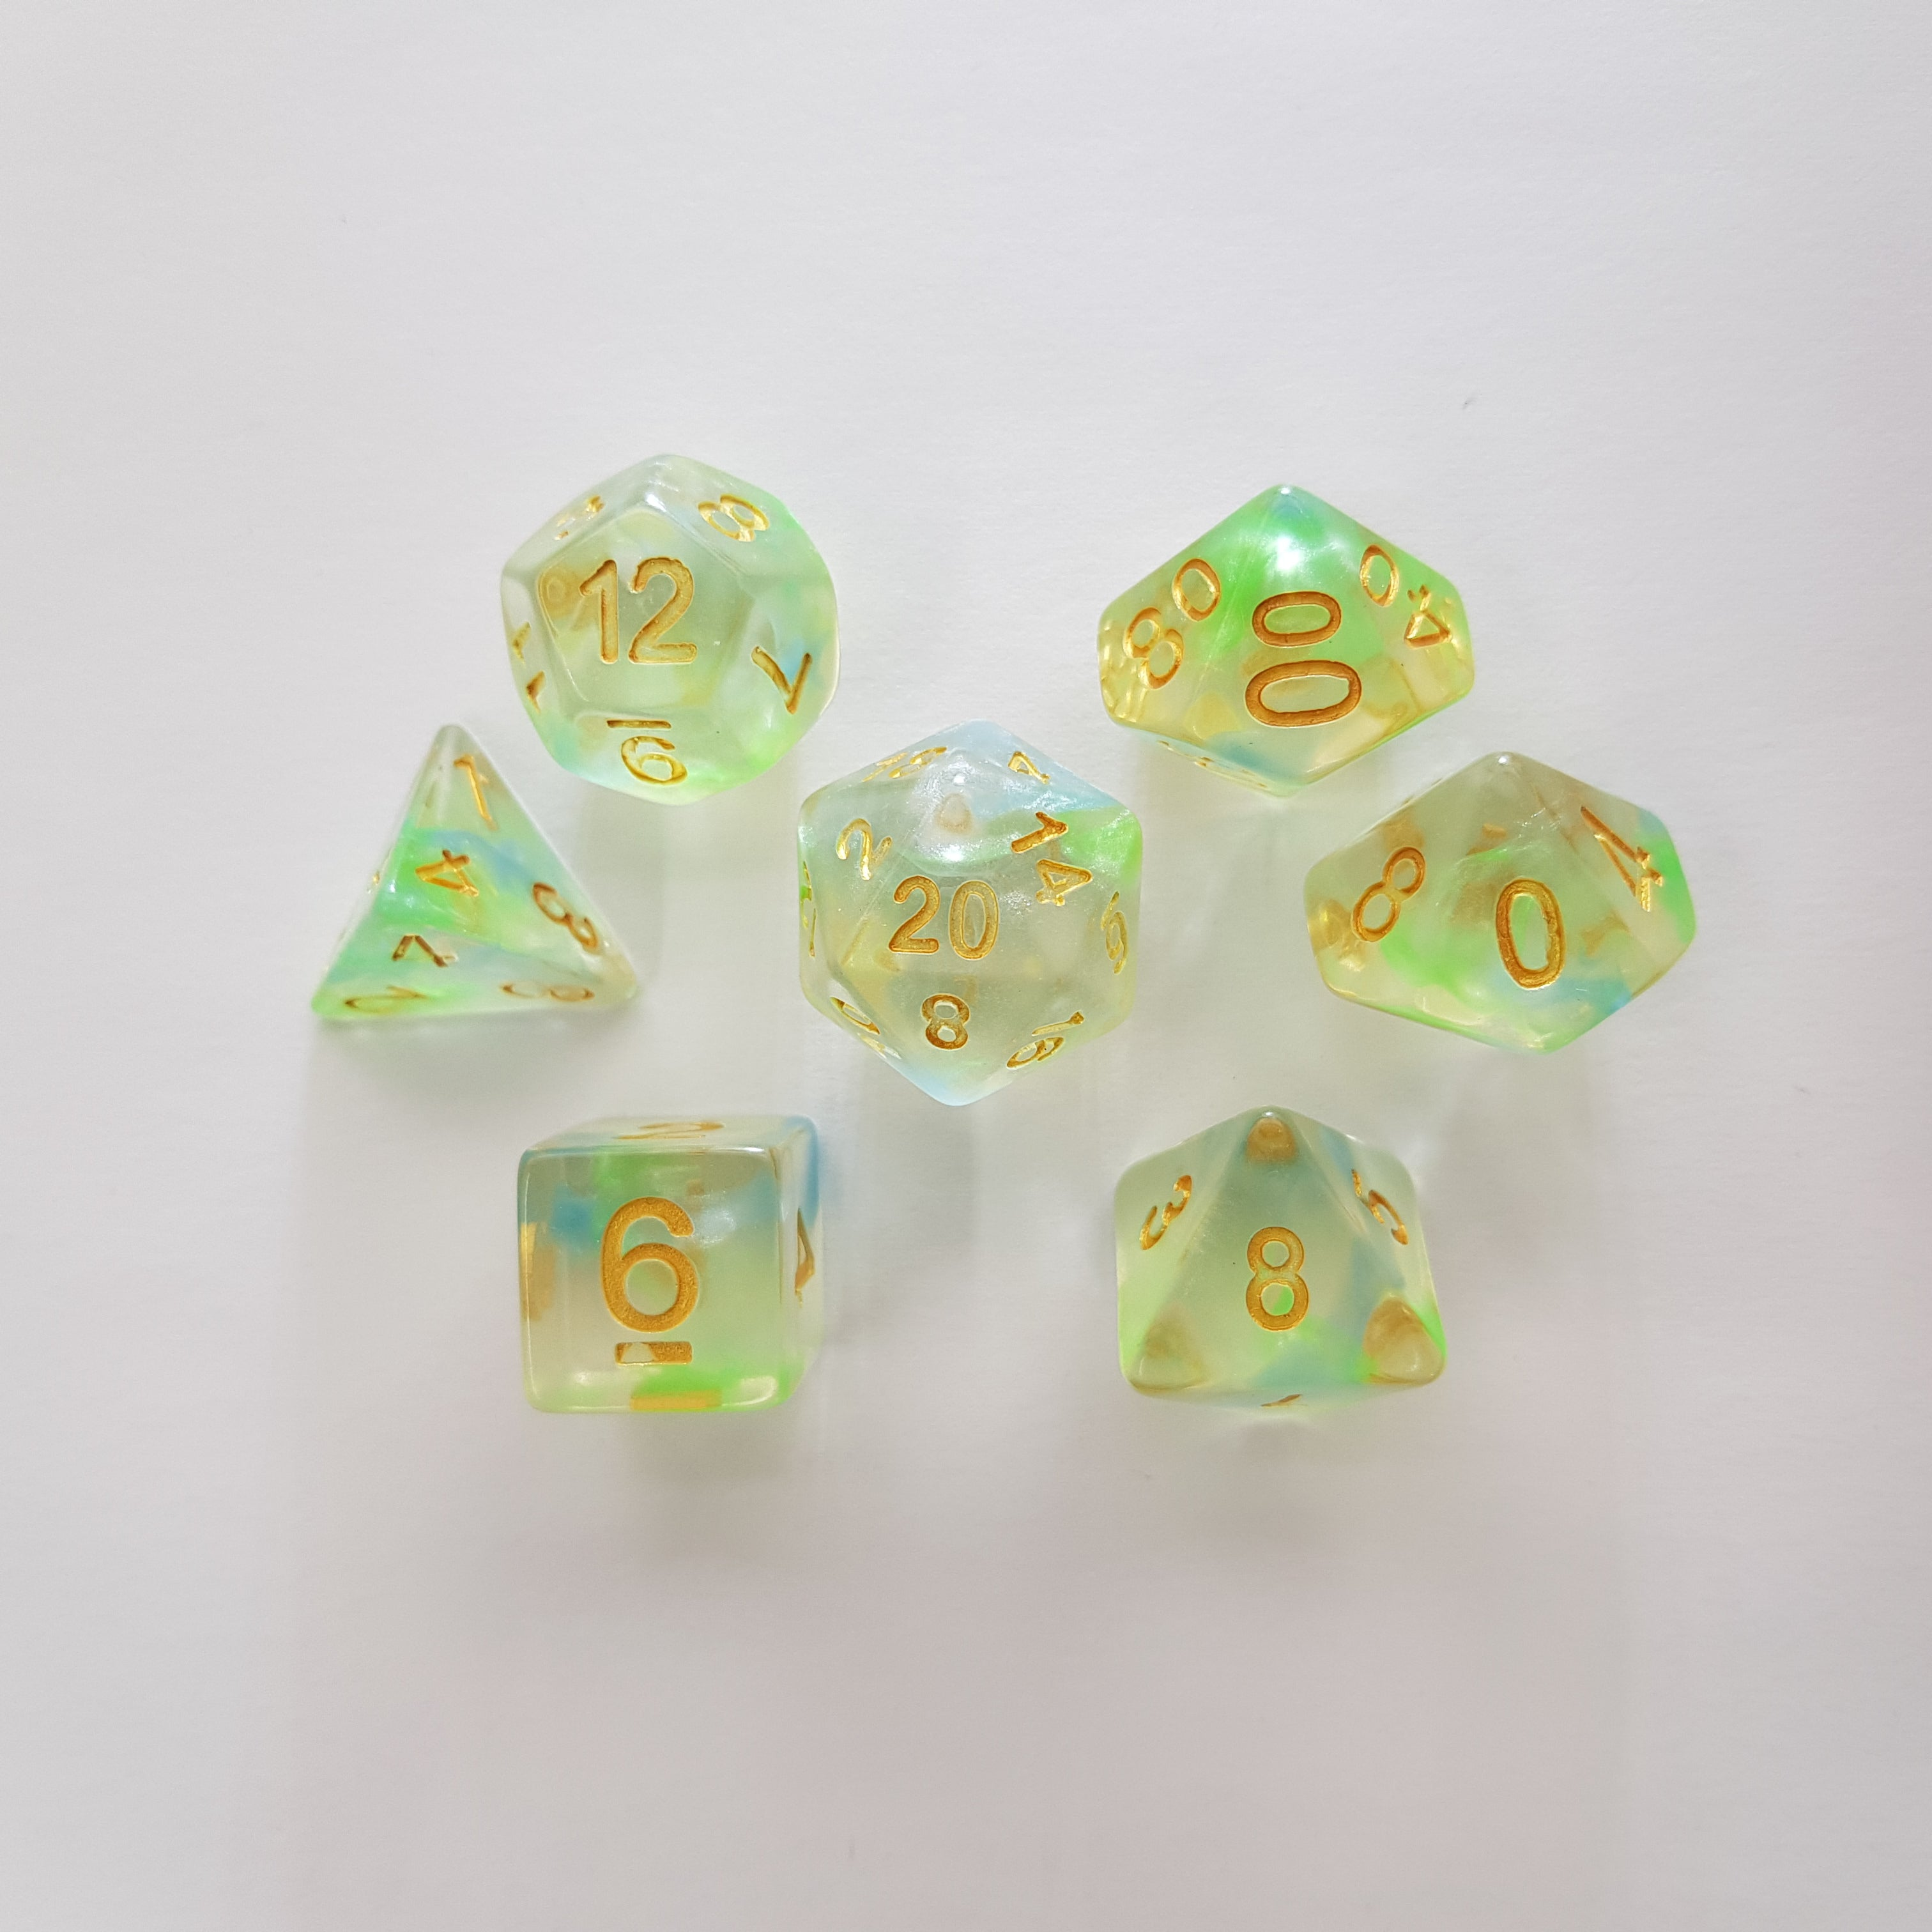 RPG Dice Set Emerald Wisp - Die Hard Dice | Sunny Pair'O'Dice